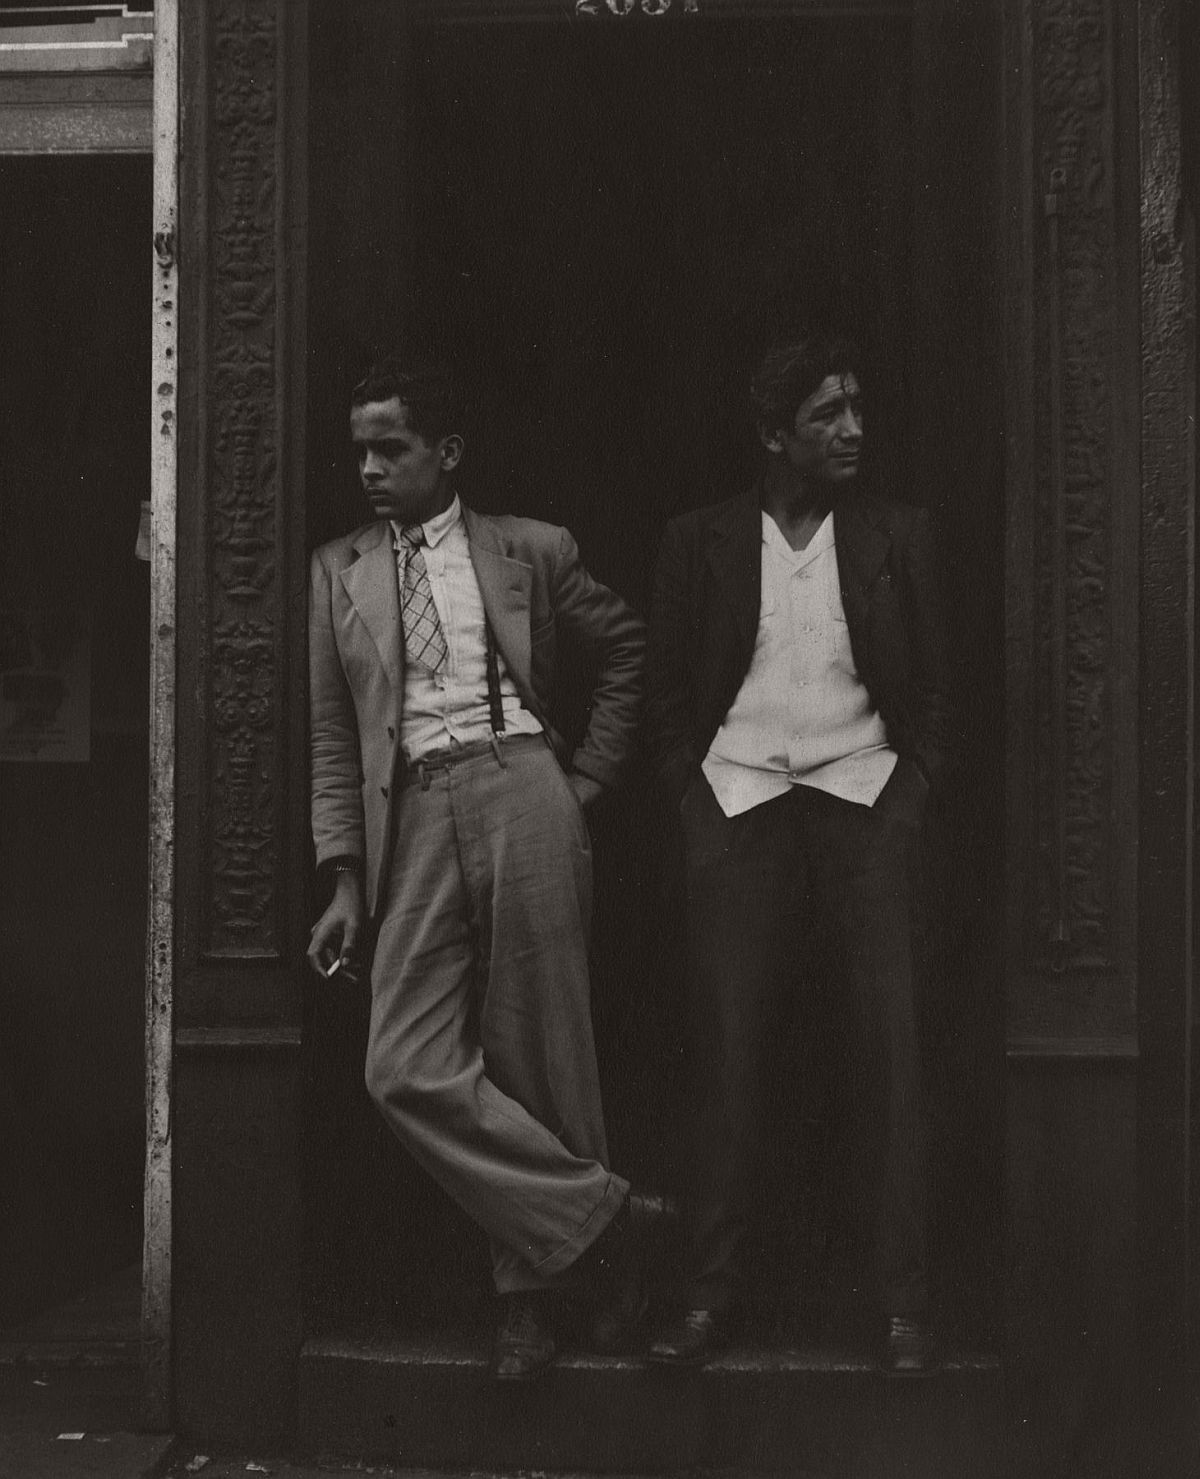 Two Men in Doorway, 1948